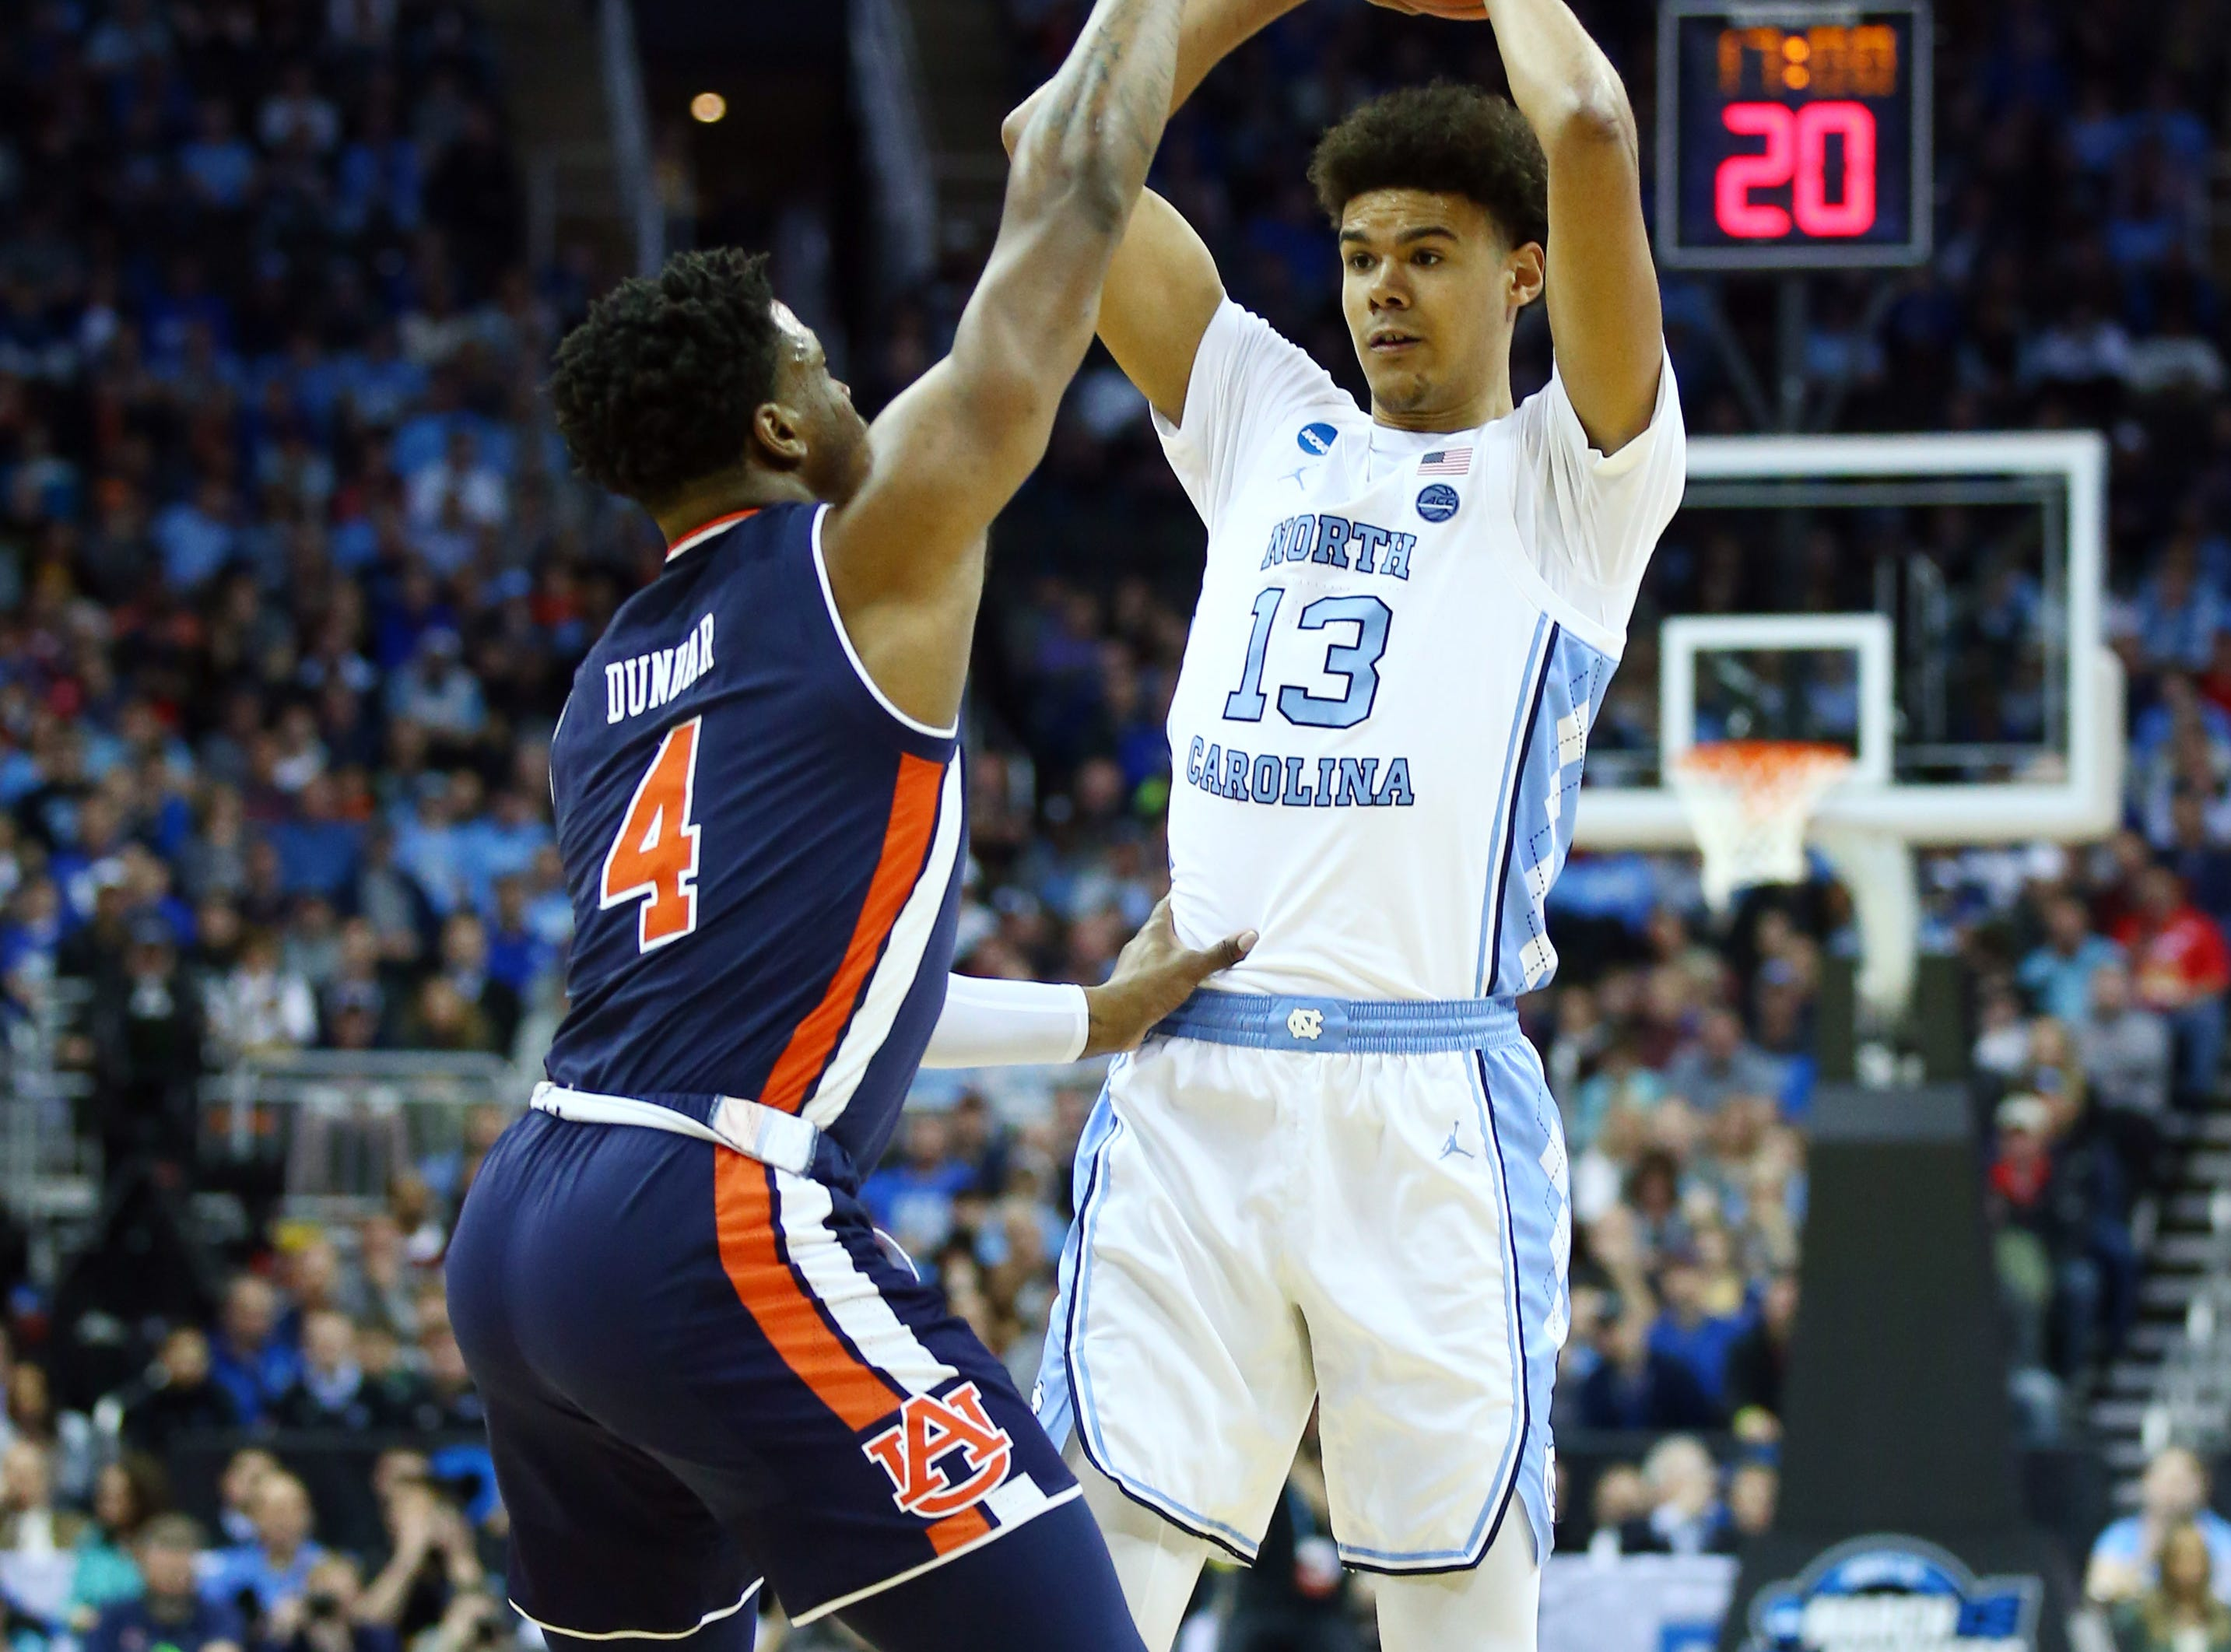 Mar 29, 2019; Kansas City, MO, United States; North Carolina Tar Heels guard Cameron Johnson (13) passes the ball against Auburn Tigers guard Malik Dunbar (4) during the first half in the semifinals of the midwest regional of the 2019 NCAA Tournament at Sprint Center. Mandatory Credit: Jay Biggerstaff-USA TODAY Sports